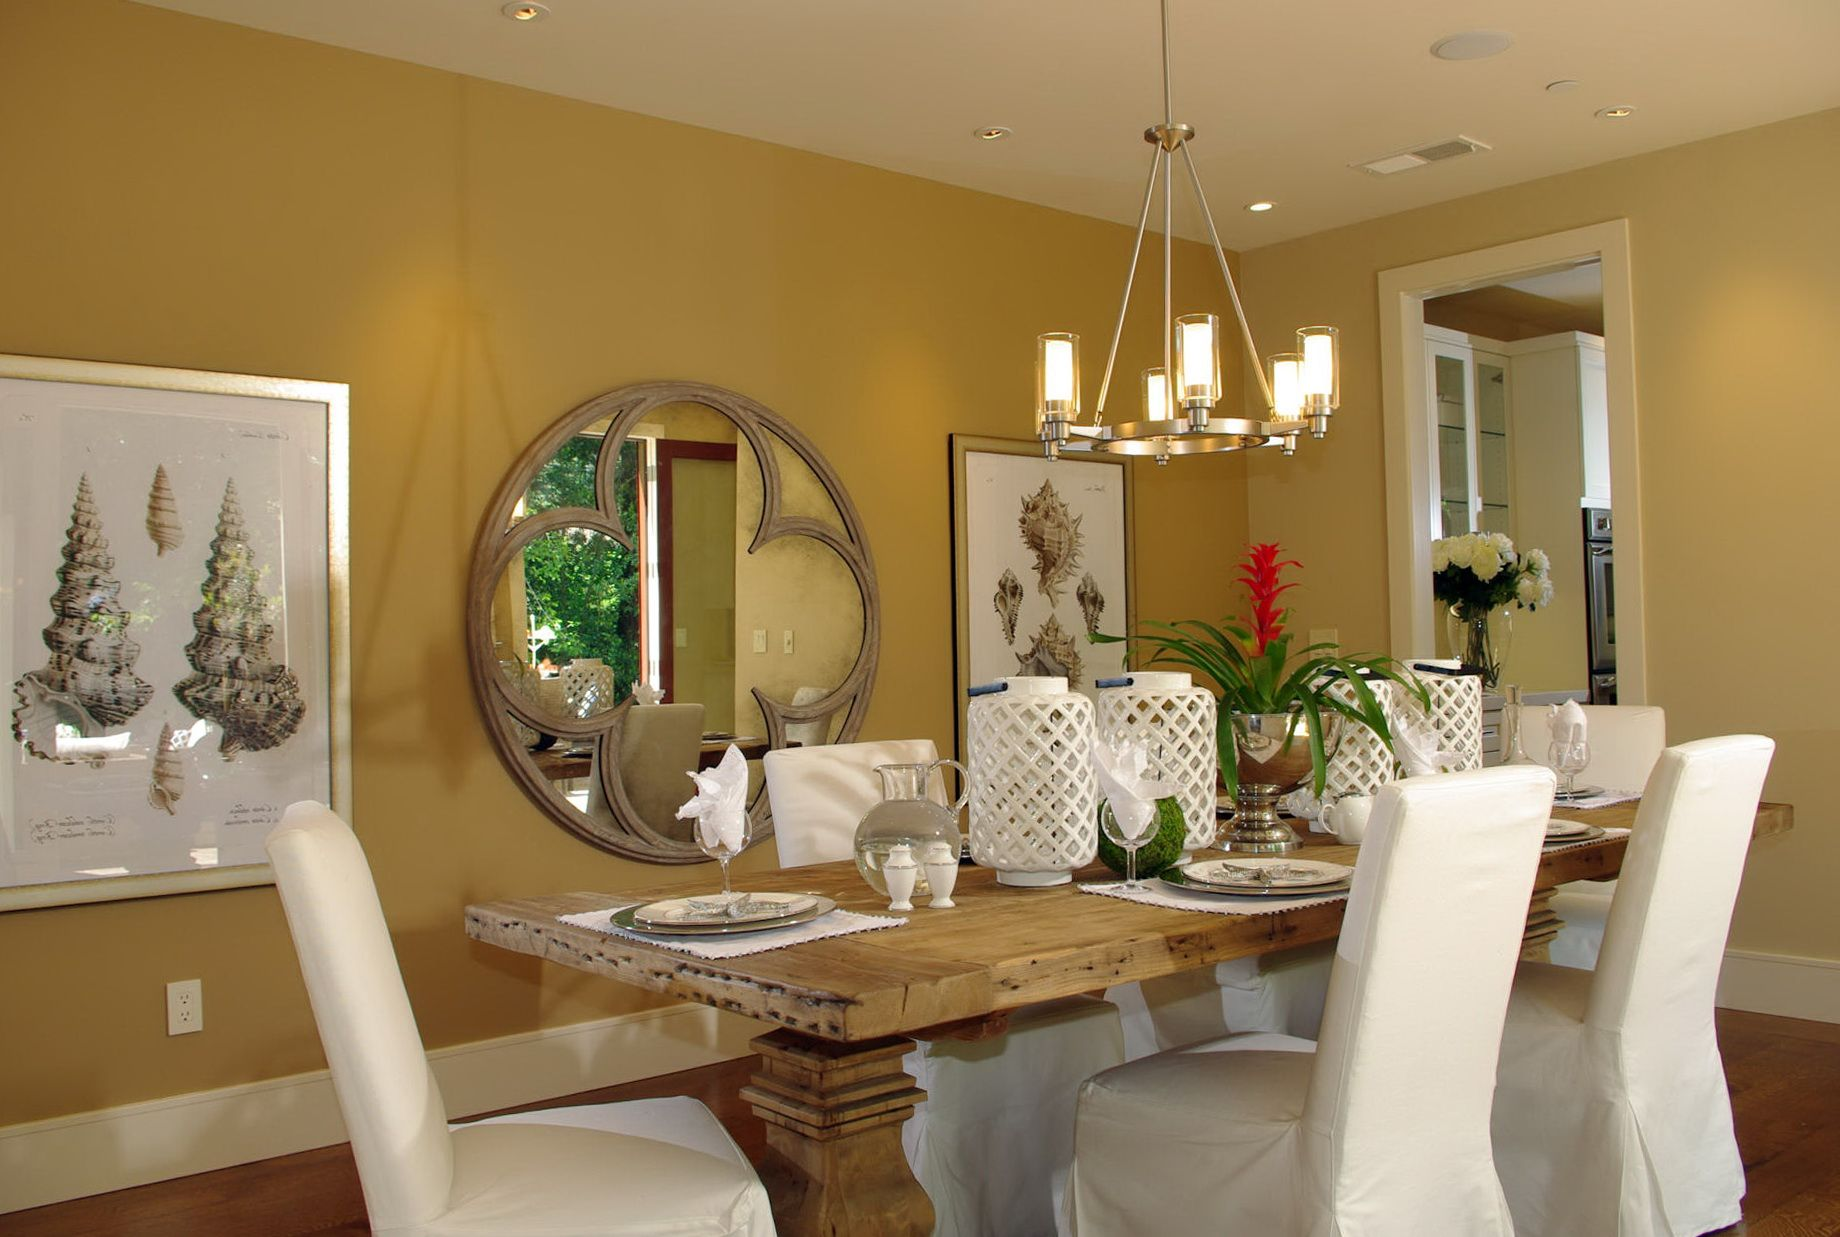 Perfect Beautiful Formal Guest Dining Room Decorating Ideas With The Captivating  Round Mirror Wall Mounted Decorative And Awesome Design